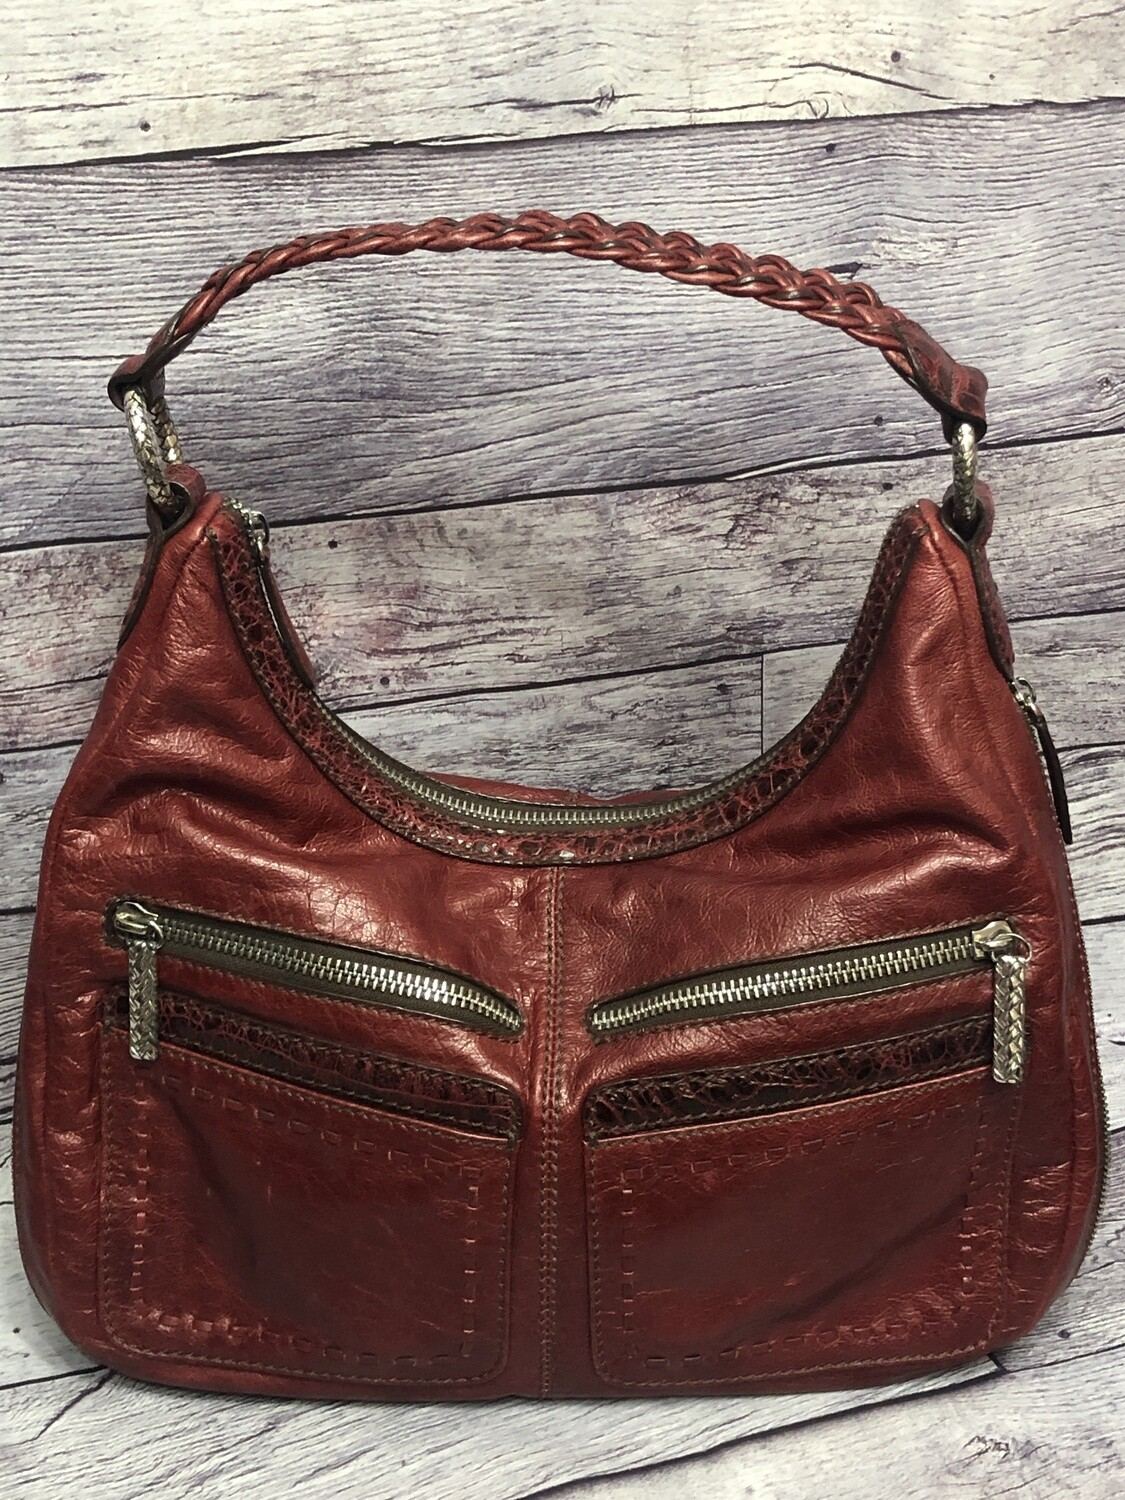 BRIGHTON Cranberry Red Leather Zip Hobo Handbag